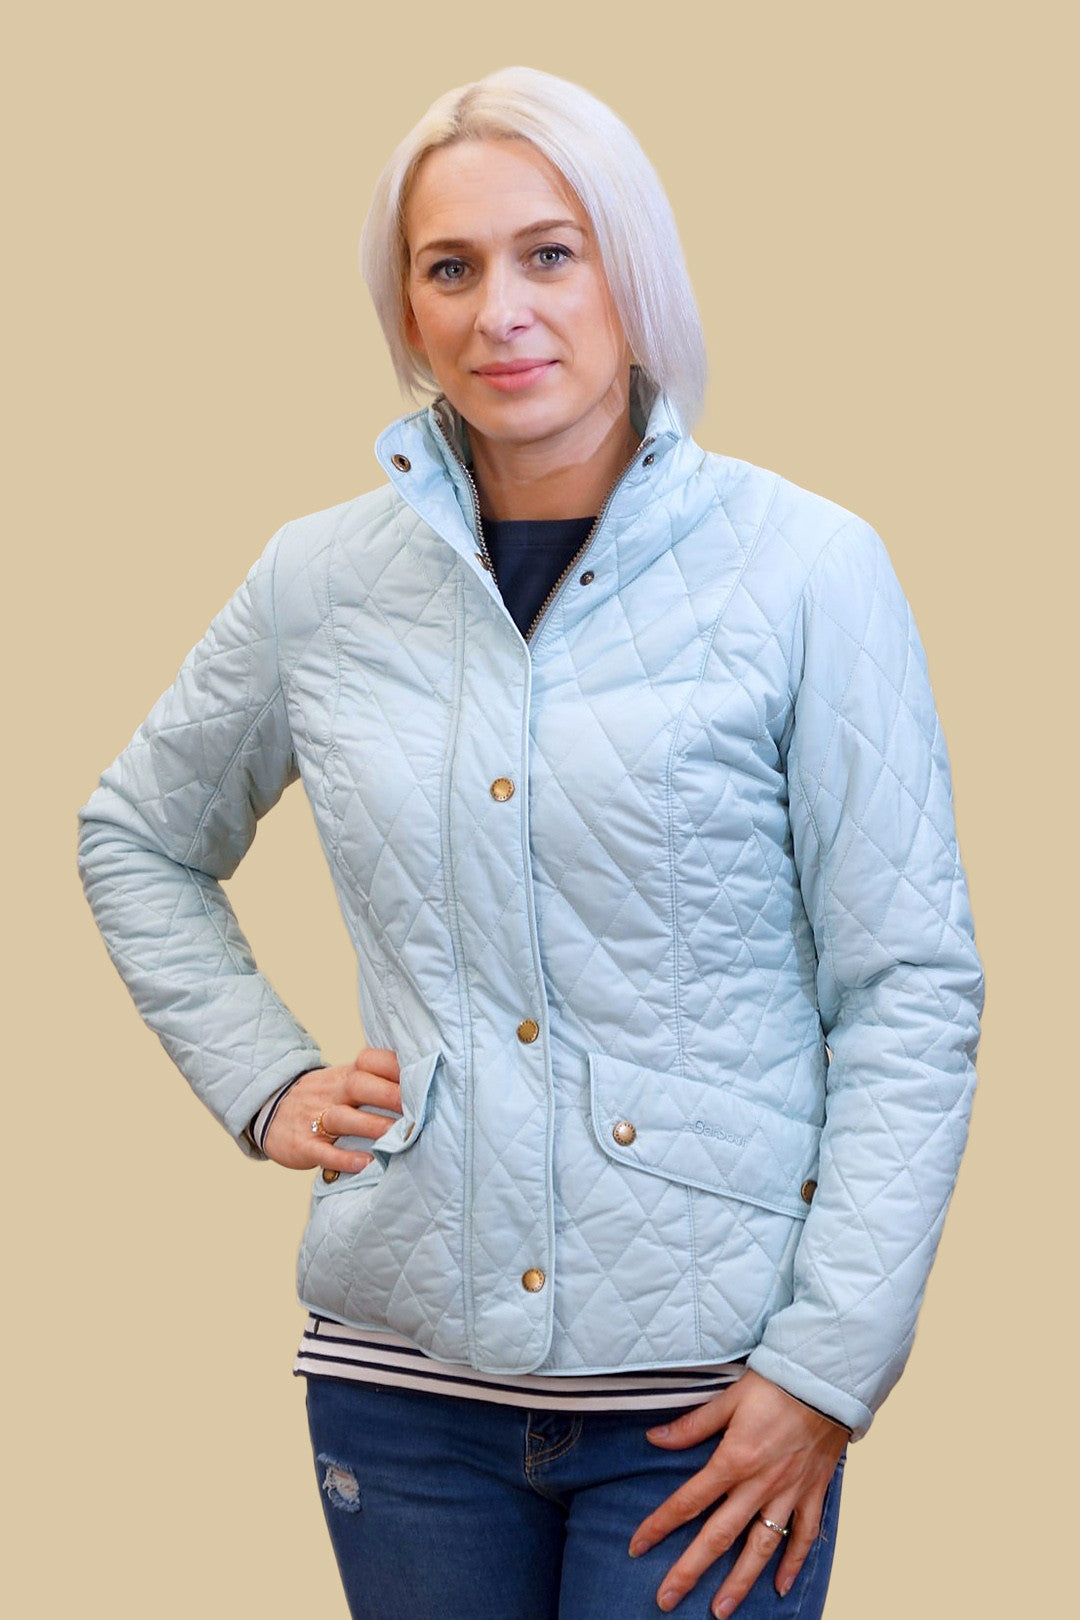 757374297bdf2 Ladies Barbour Quilt Jackets from Smyths Quilted Jacket Range - Smyths  Country Sports